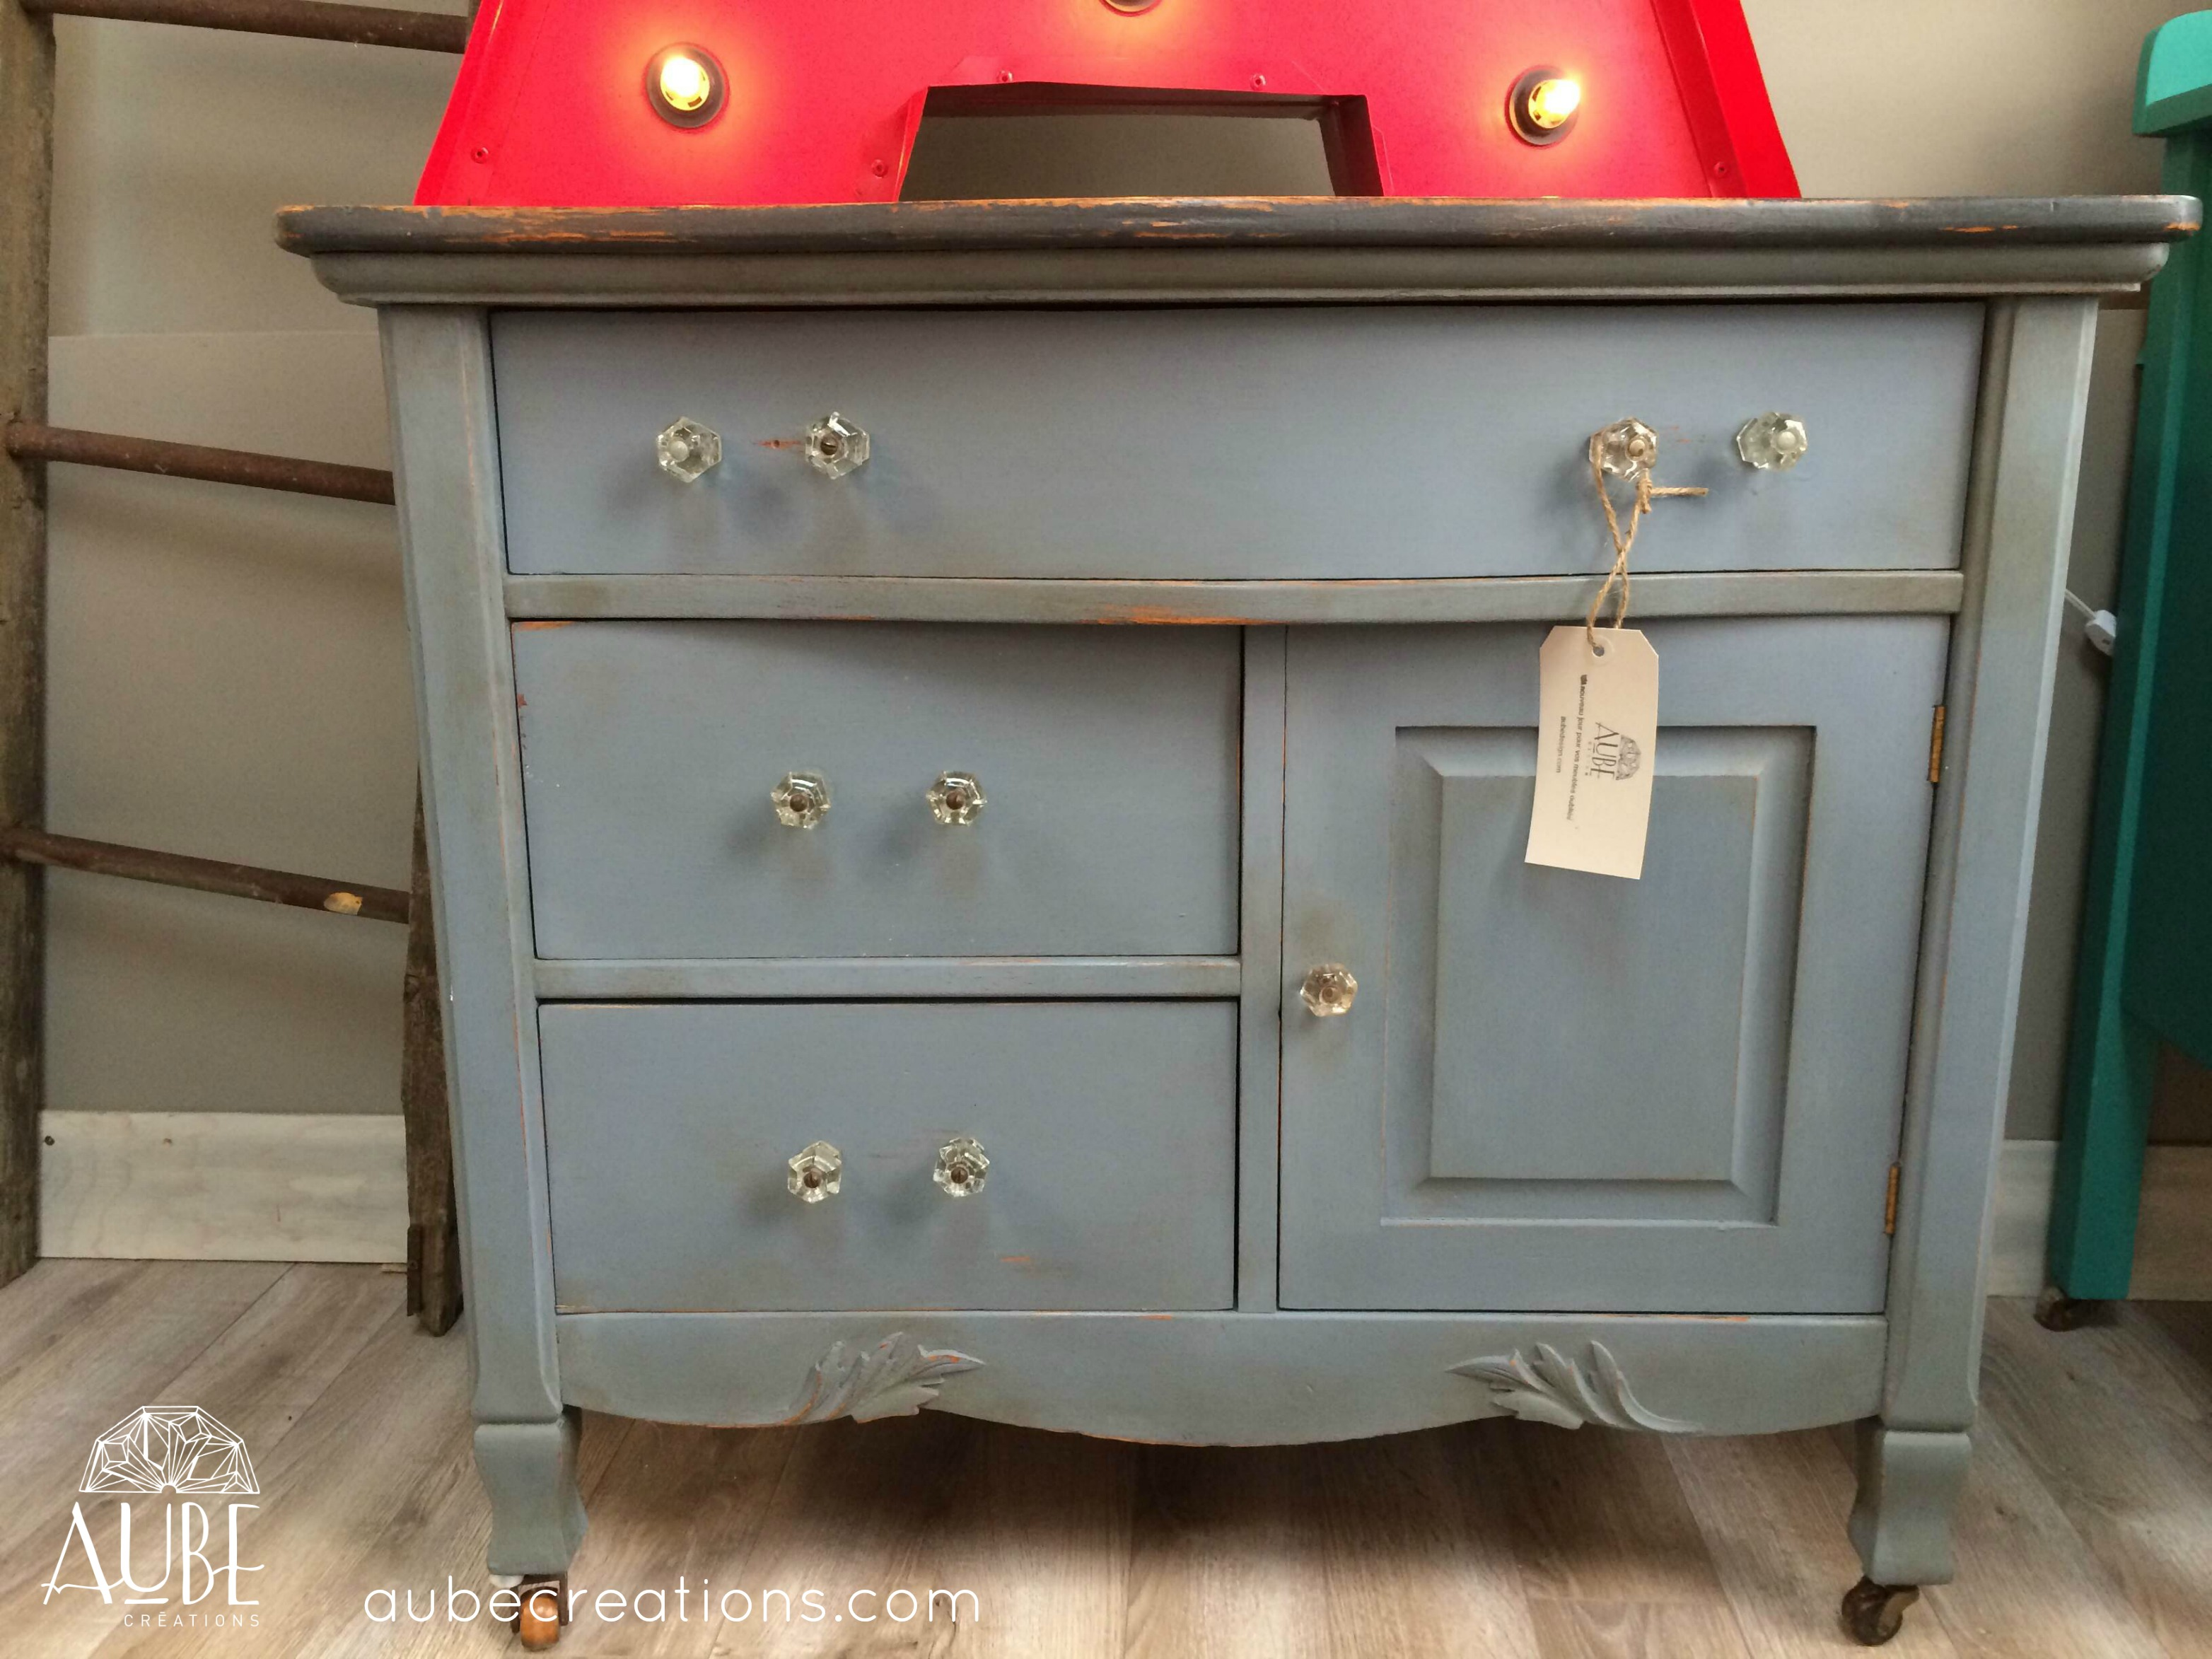 Sabler Un Meuble Chalk Paint Annie Sloan Blogue Créations Aube Design